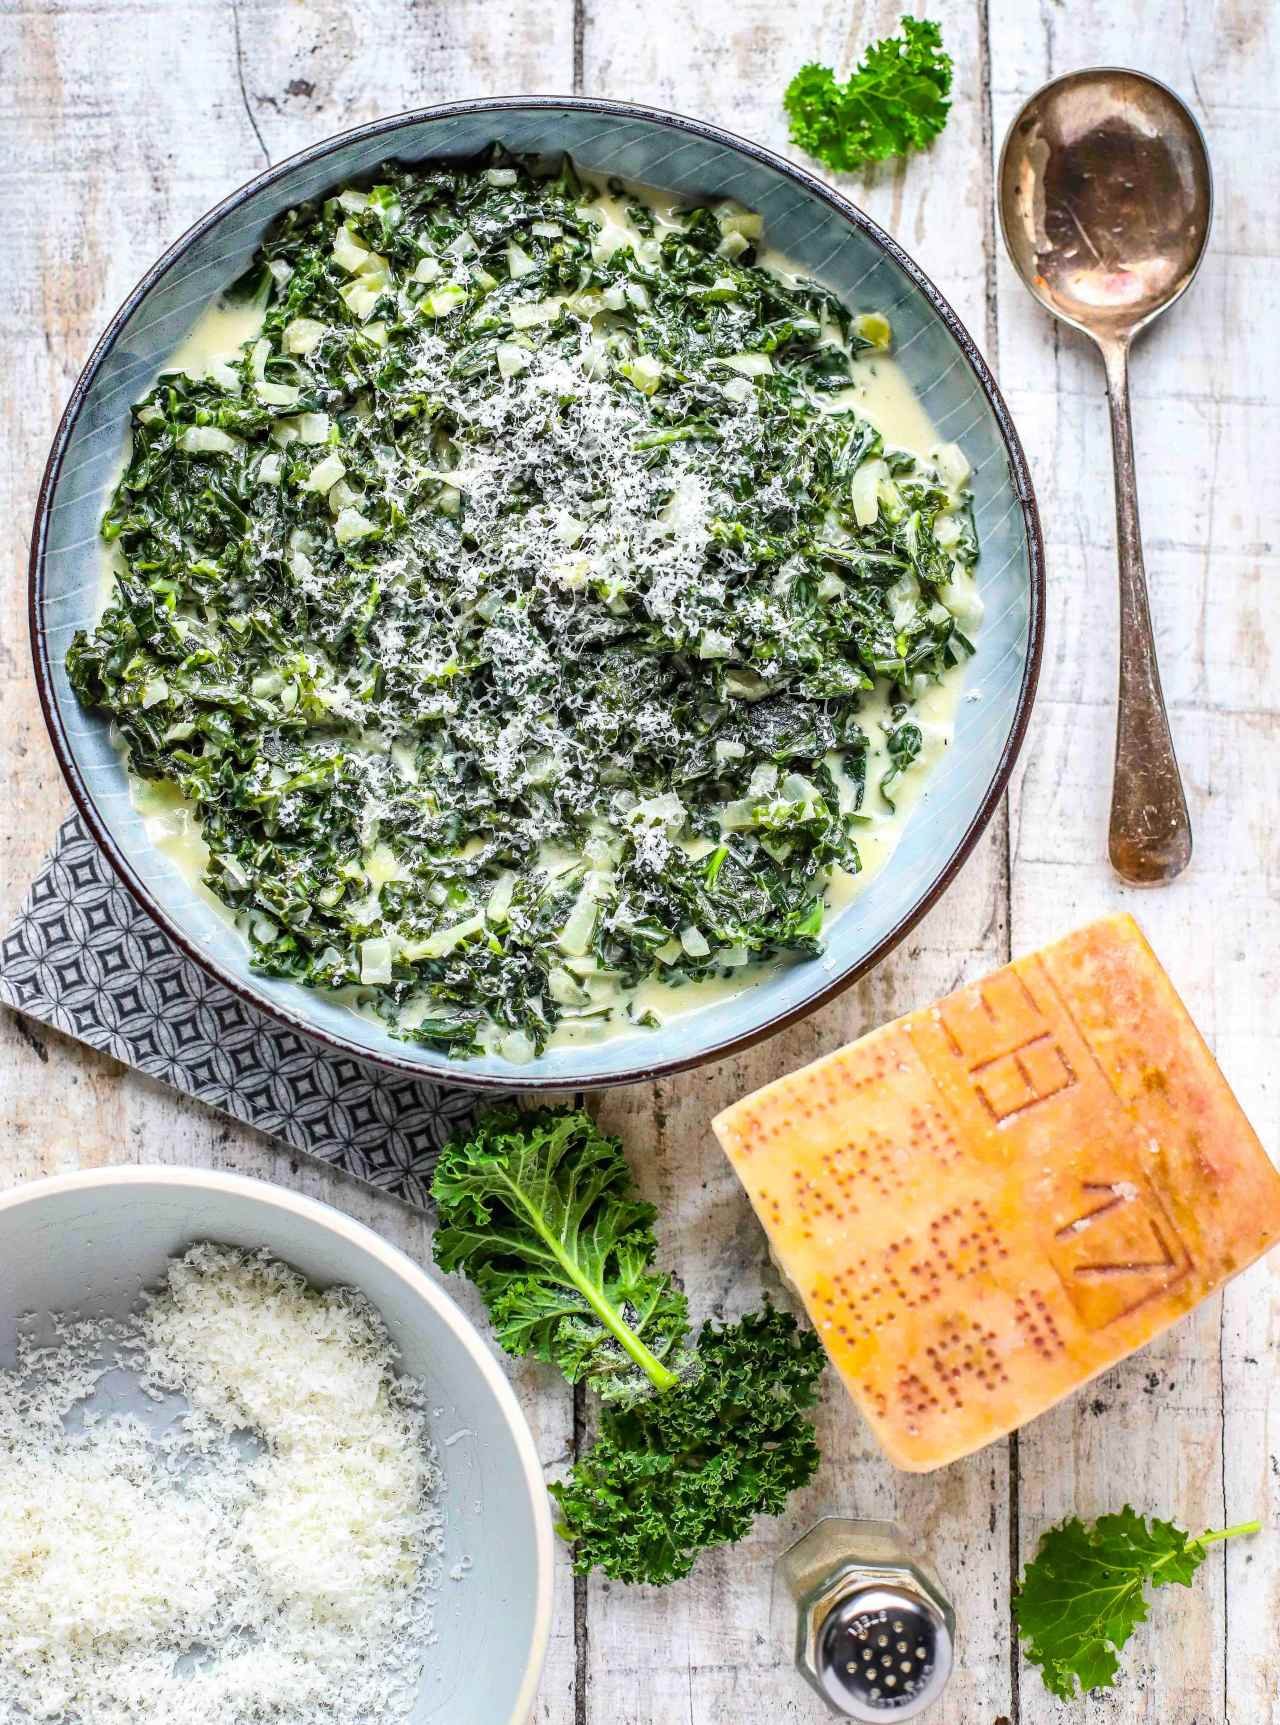 Parmesan Creamed Kale for a festive and slightly decadent #sidedish. #kale #parmesan #christmasfood #parmigianoreggiano #easyrecipe